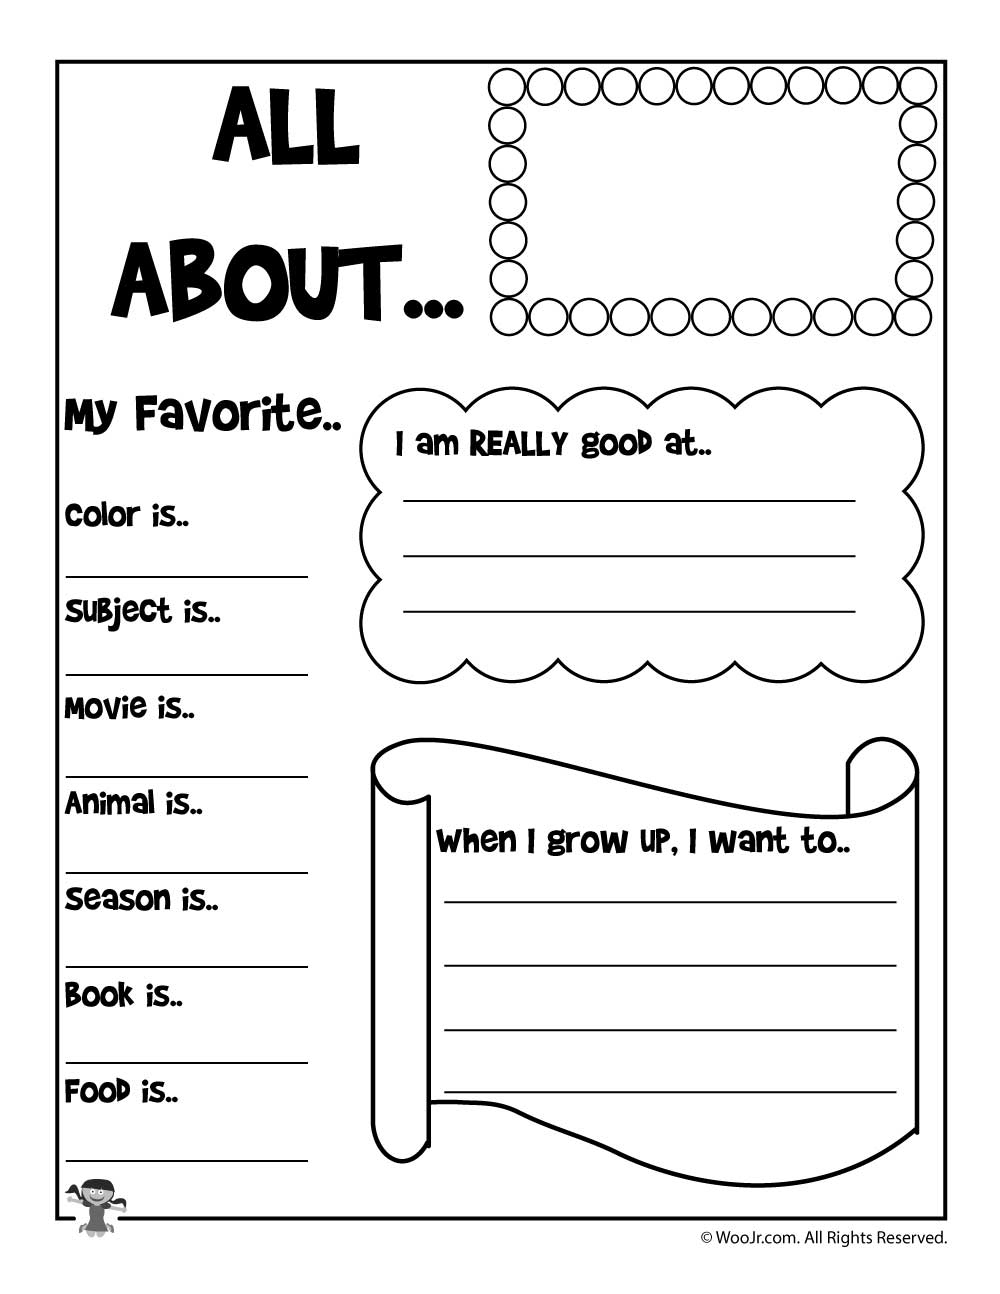 All About Me Printable Worksheet | Woo! Jr. Kids Activities | All About Me Worksheet Preschool Printable